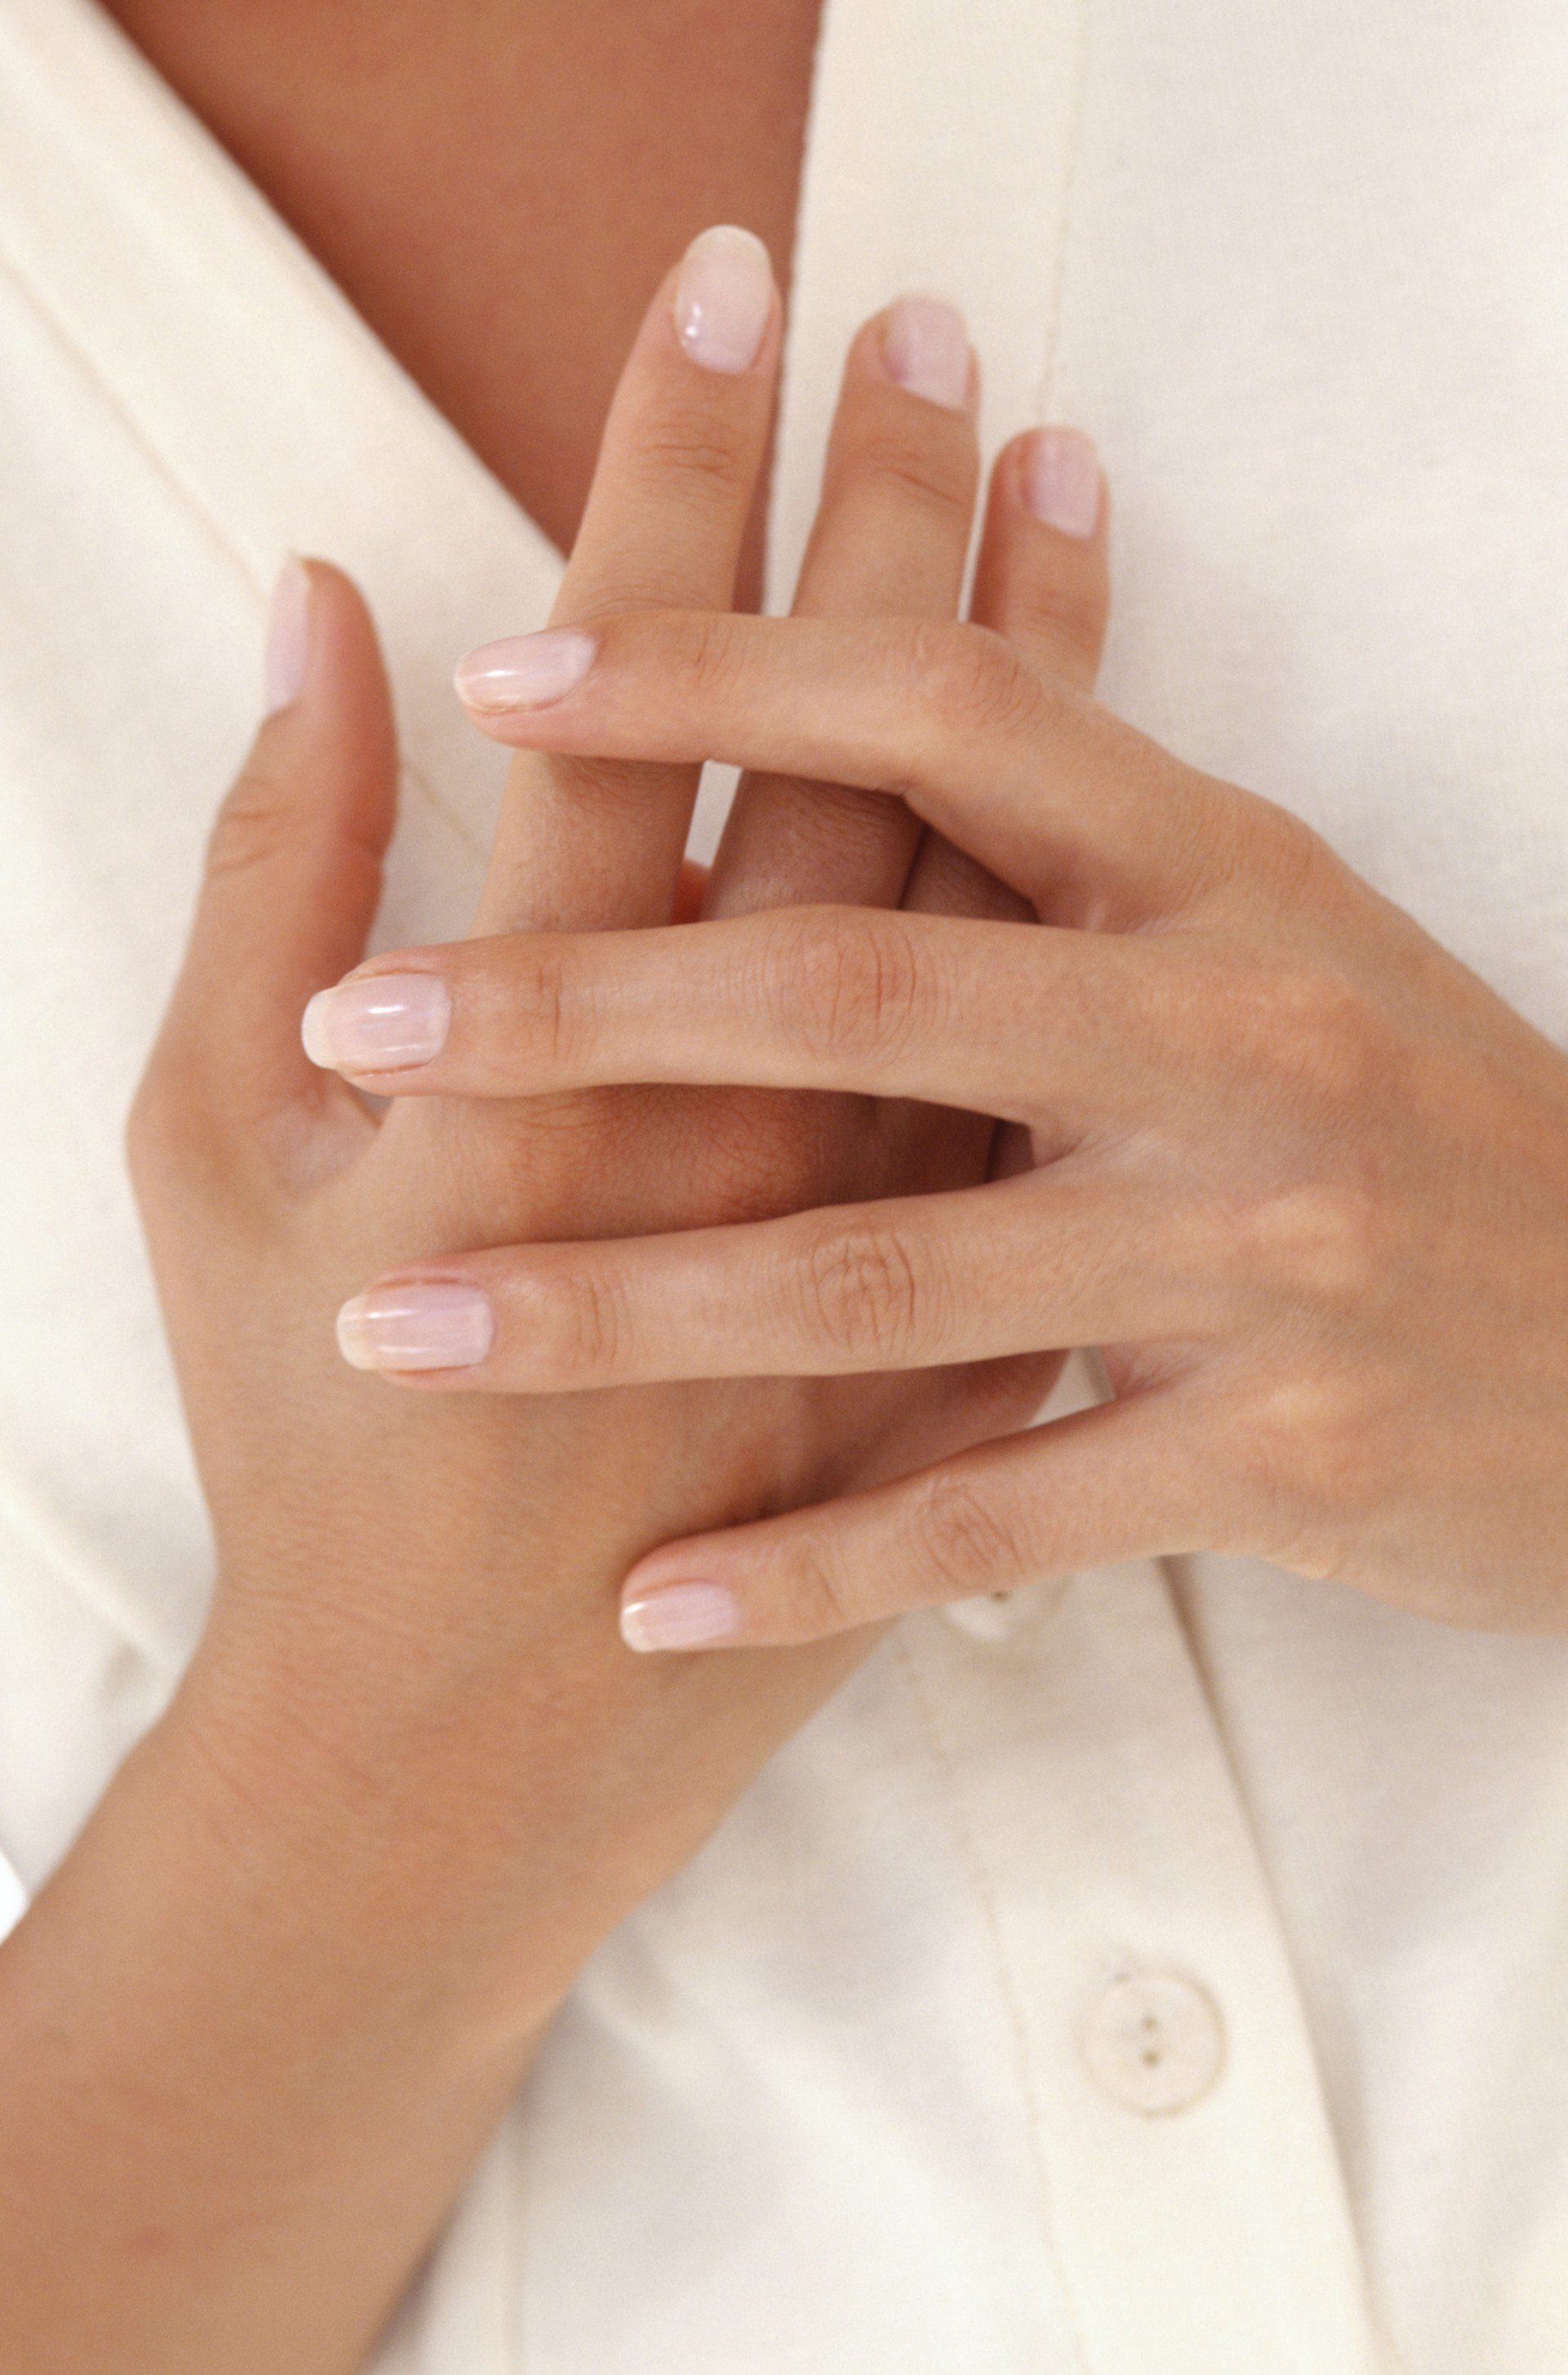 Can Supplements Promote Strong Nails? | LIVESTRONG.COM